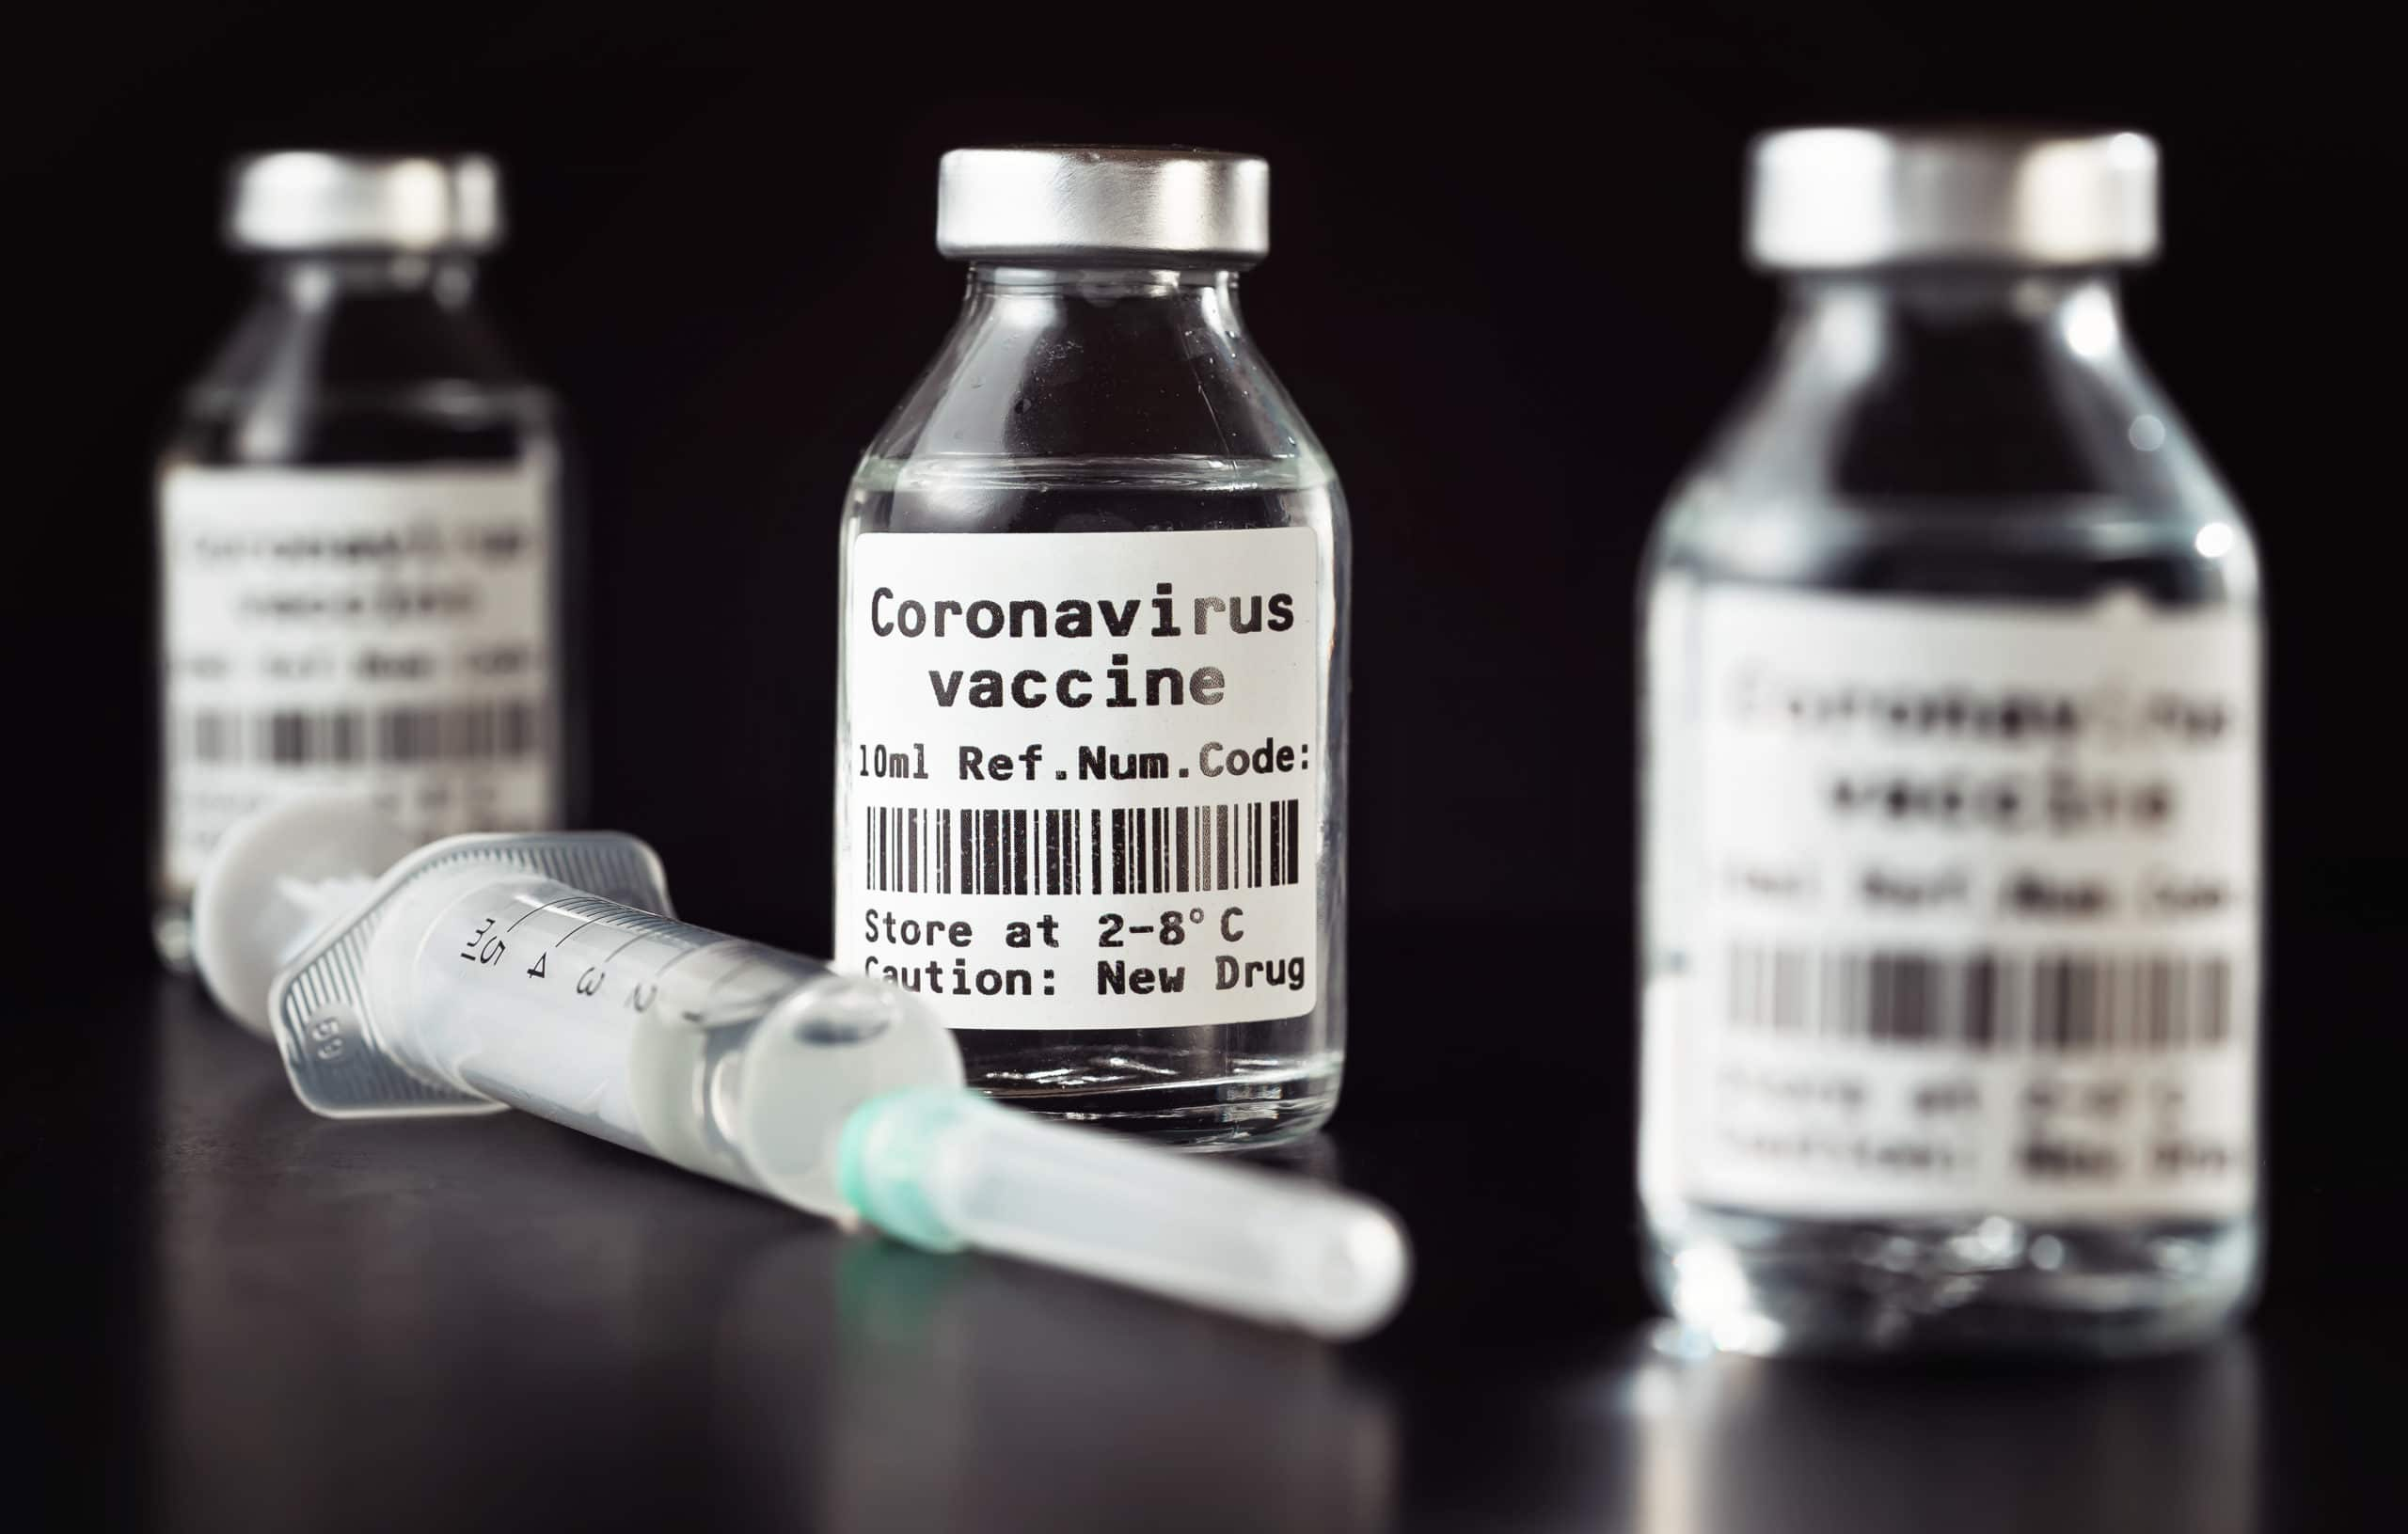 Coronavirus Covid-19 vaccine concept –  three glass vials on black table, hypodermic syringe needle near, closeup detail (label own design – dummy data and barcode, not real product)